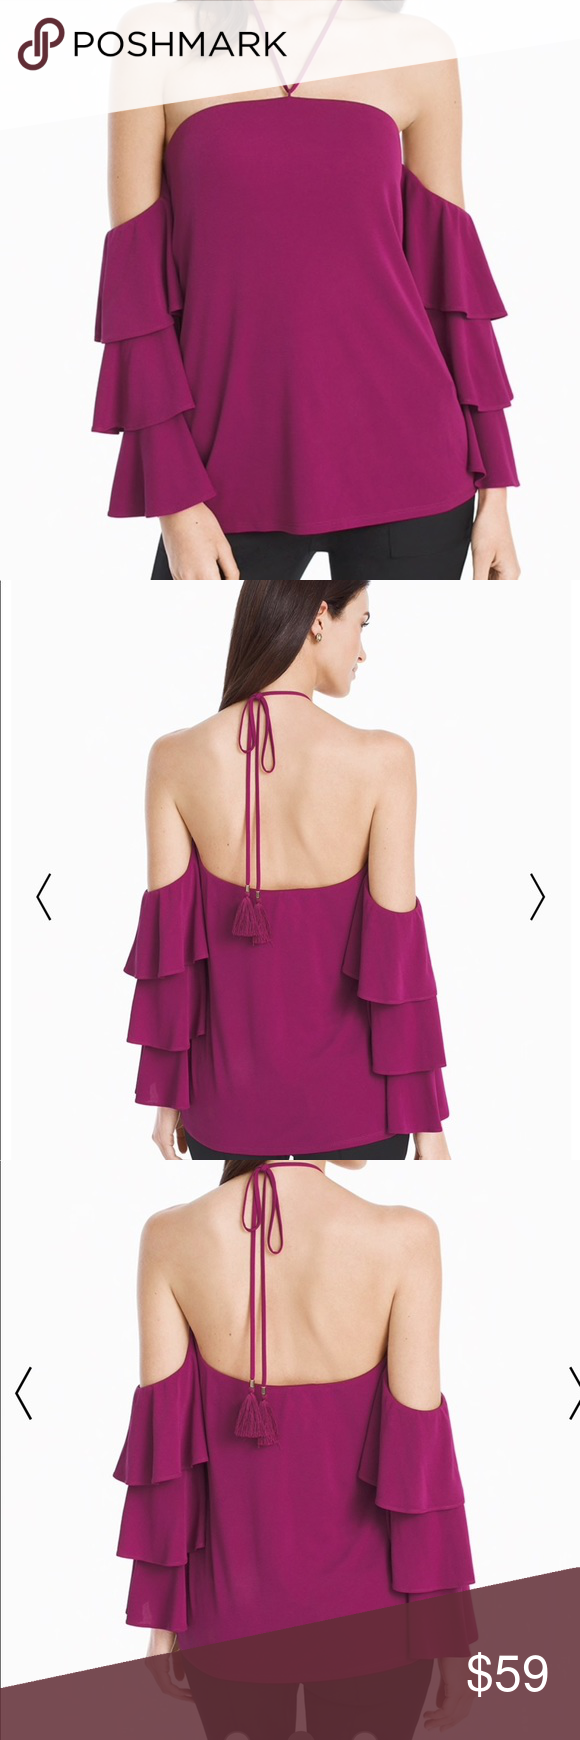 ddd409d770d White House Black Market off shoulder top, berry Off the shoulder top  featuring 3/4 length tiered sleeves and a halter tie with tassels.